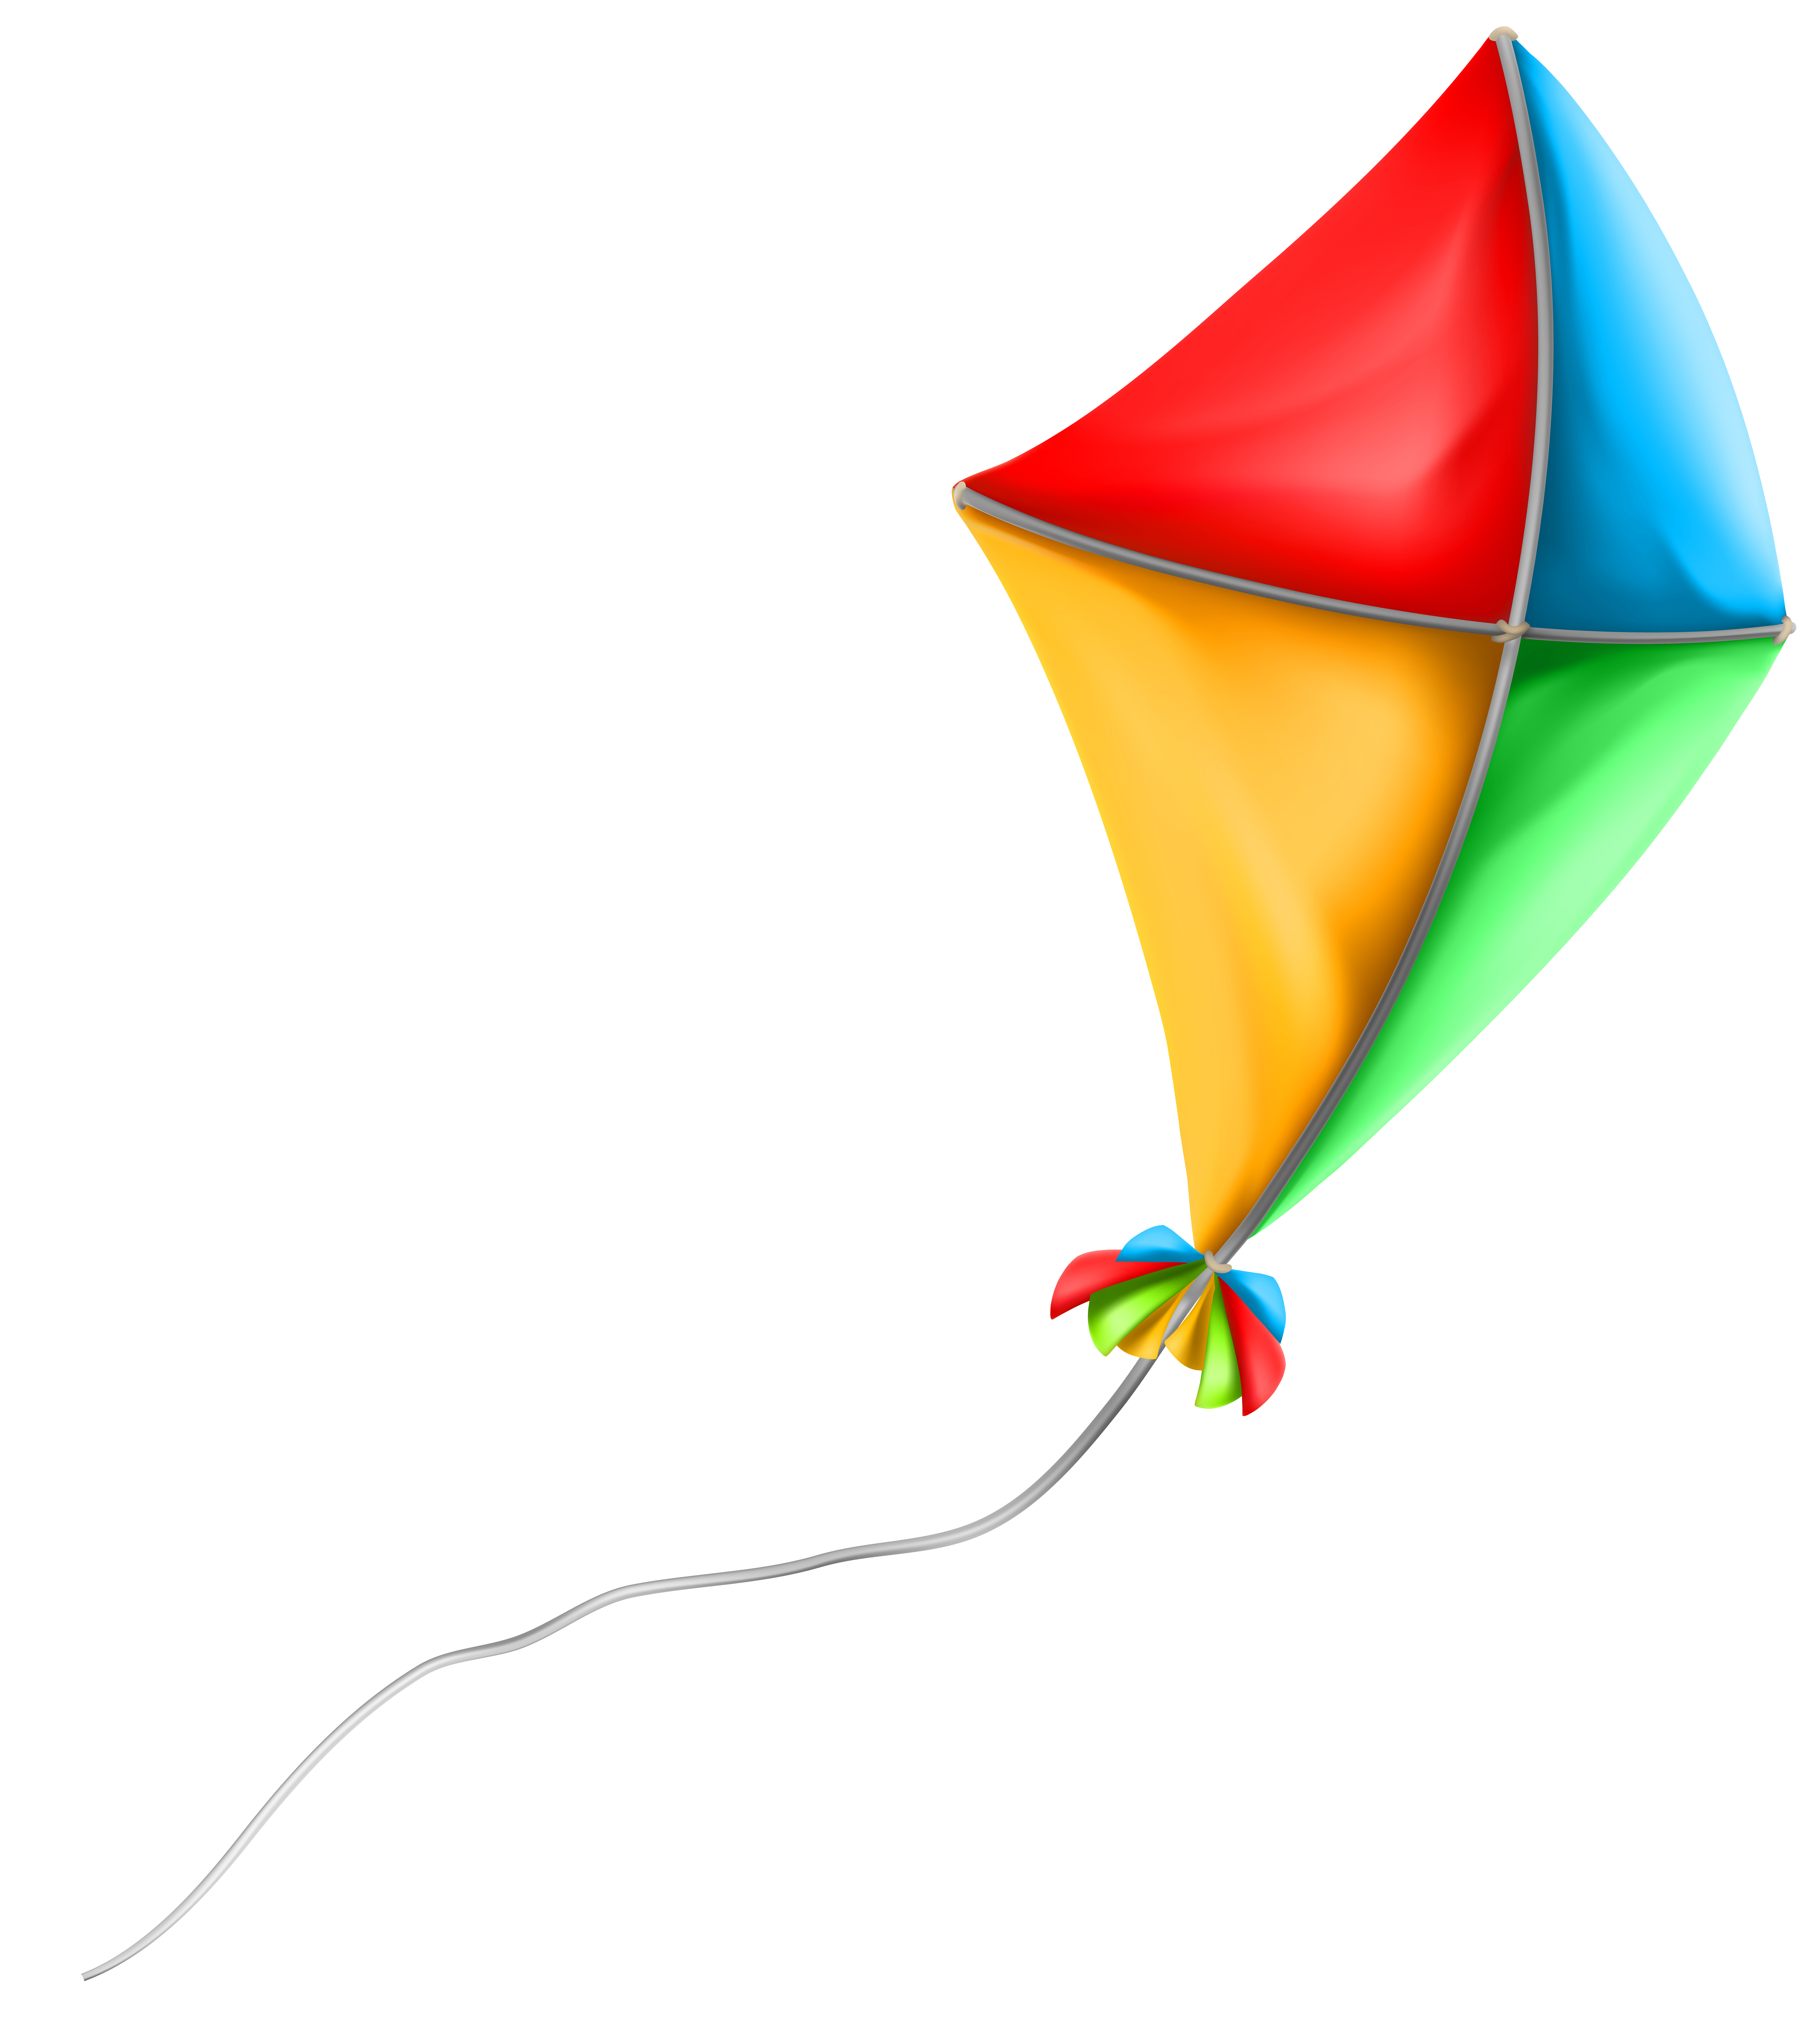 Colorful Kite PNG Clip Art Image.